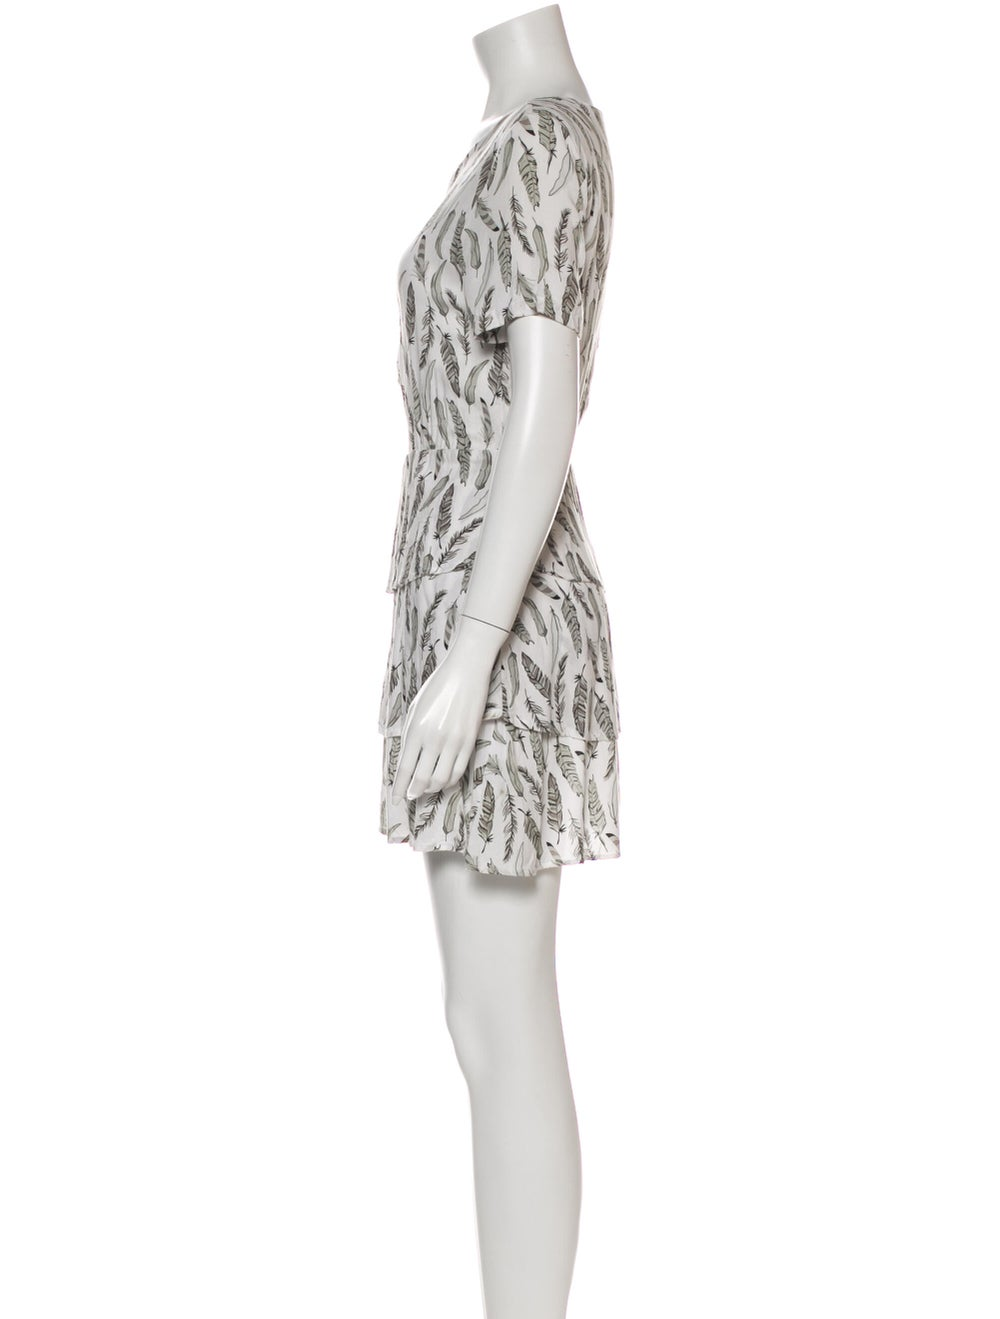 Anine Bing Printed Mini Dress Grey - image 2